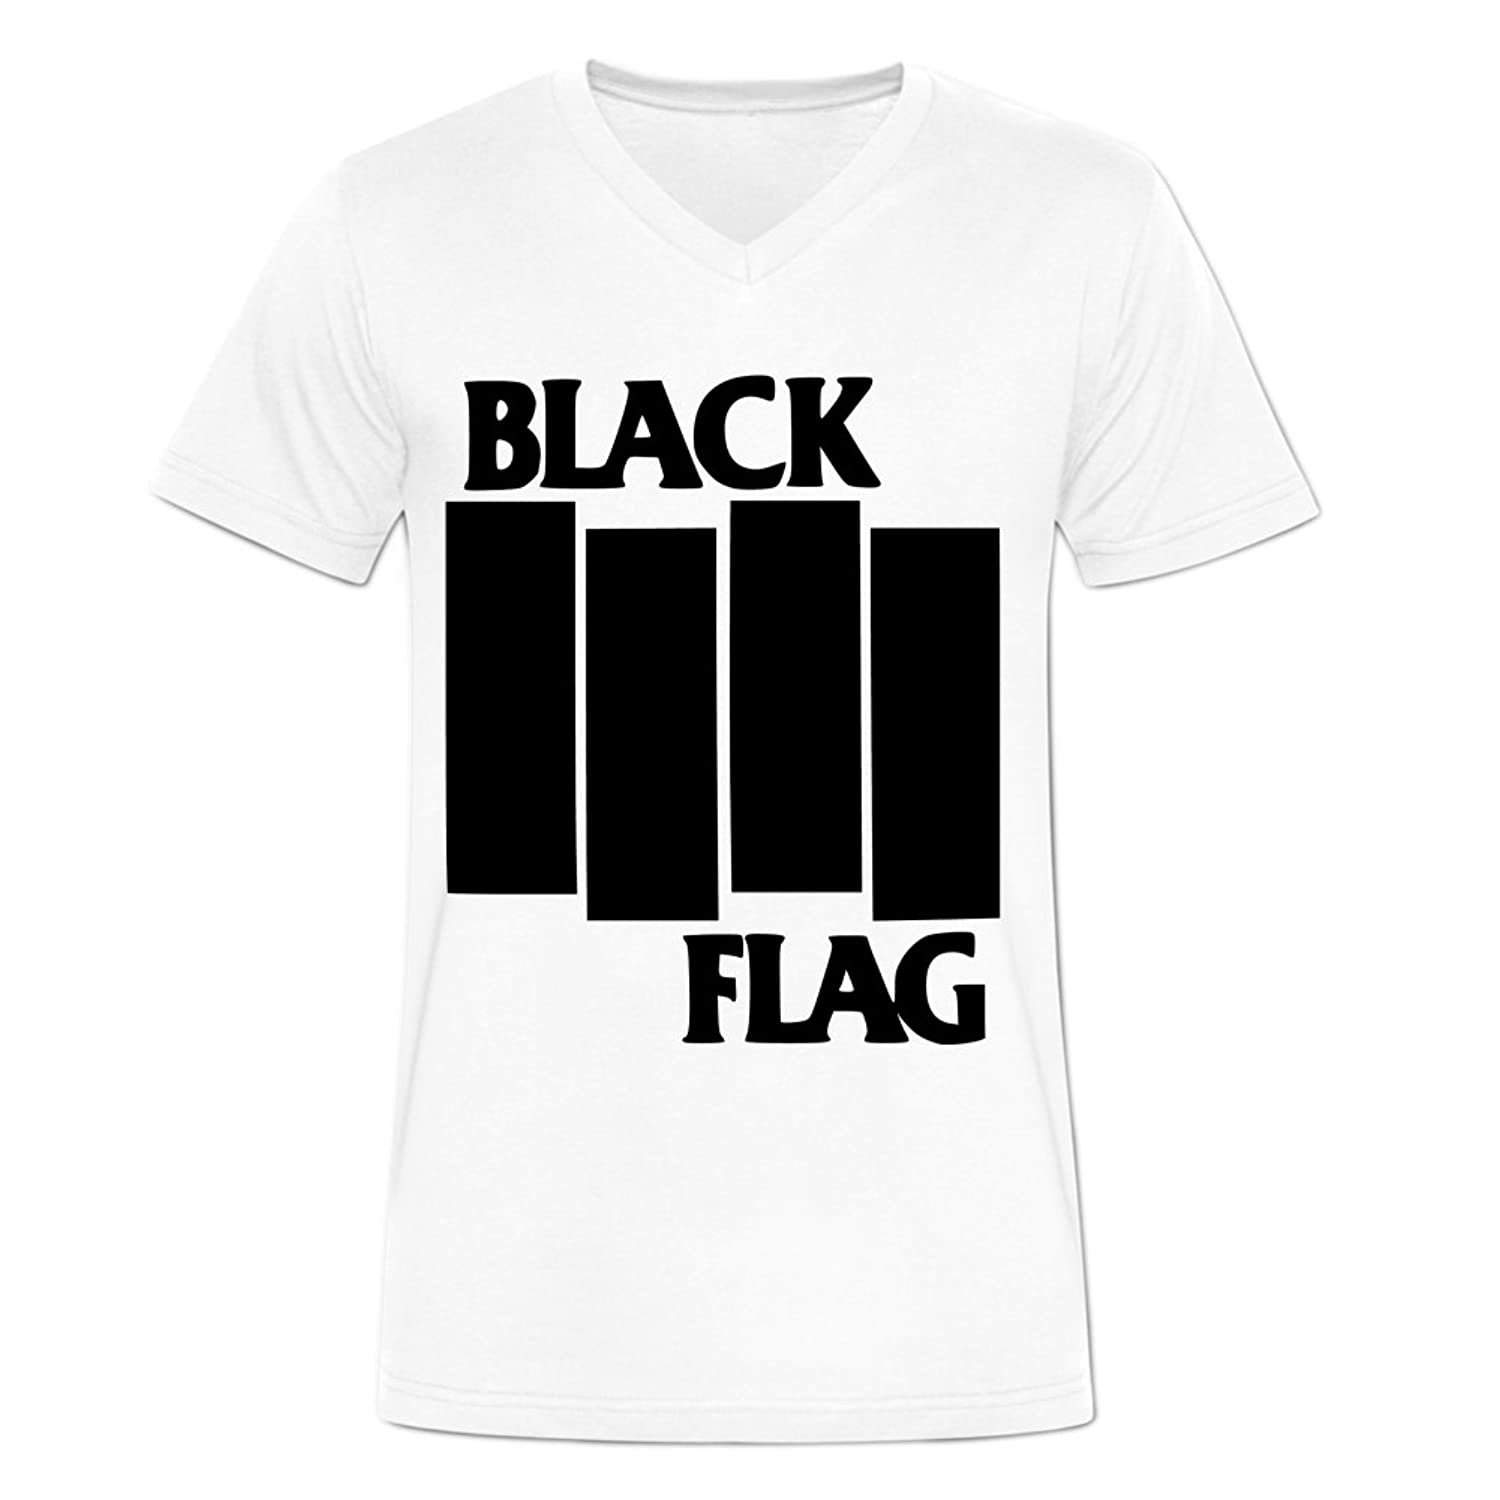 Black flag t shirt europe - This Tee Shirt Would Never Out Of Fashion A Tee Shirt Like This Should Be In Your Closet